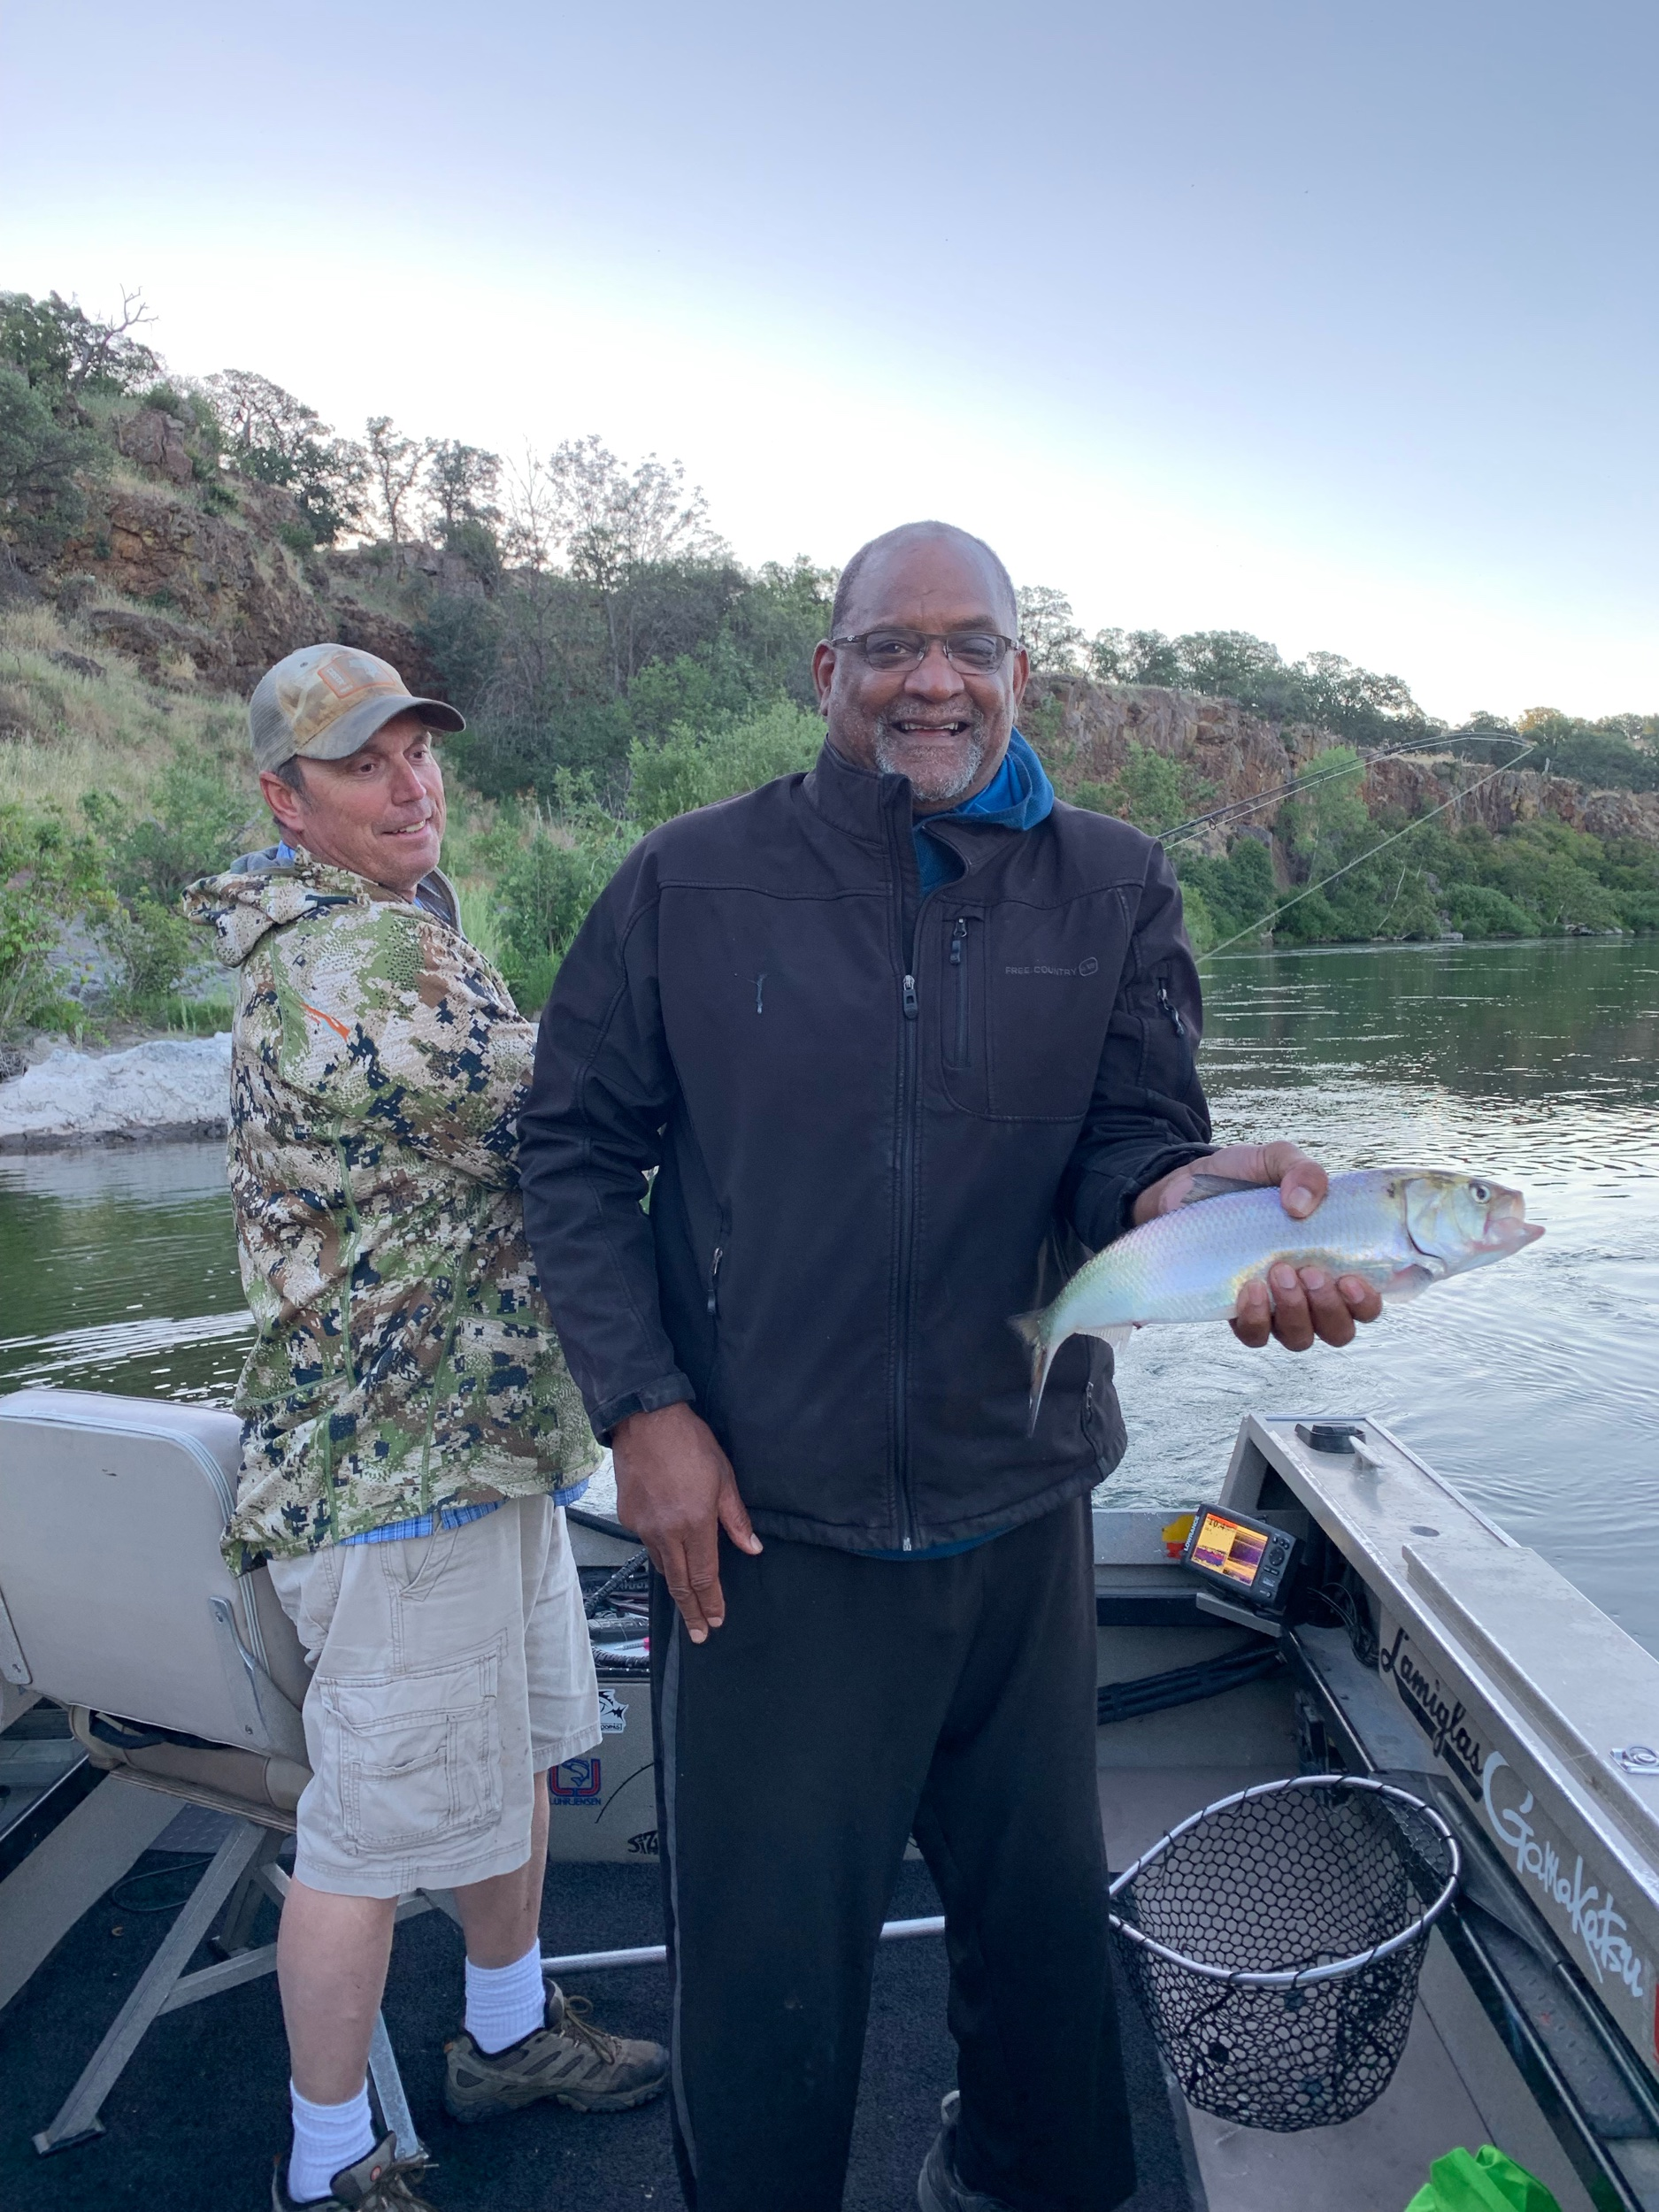 Fishing Guide Dave Jacobs  tel:530 646-9110  of  salmonsacriver.com  watches as client Bruce Jenkins gets his picture taken by fishing guide Mike Rasmussen. American Shad fishing on the Sacramento River has been red hot this week. June 21, 2019